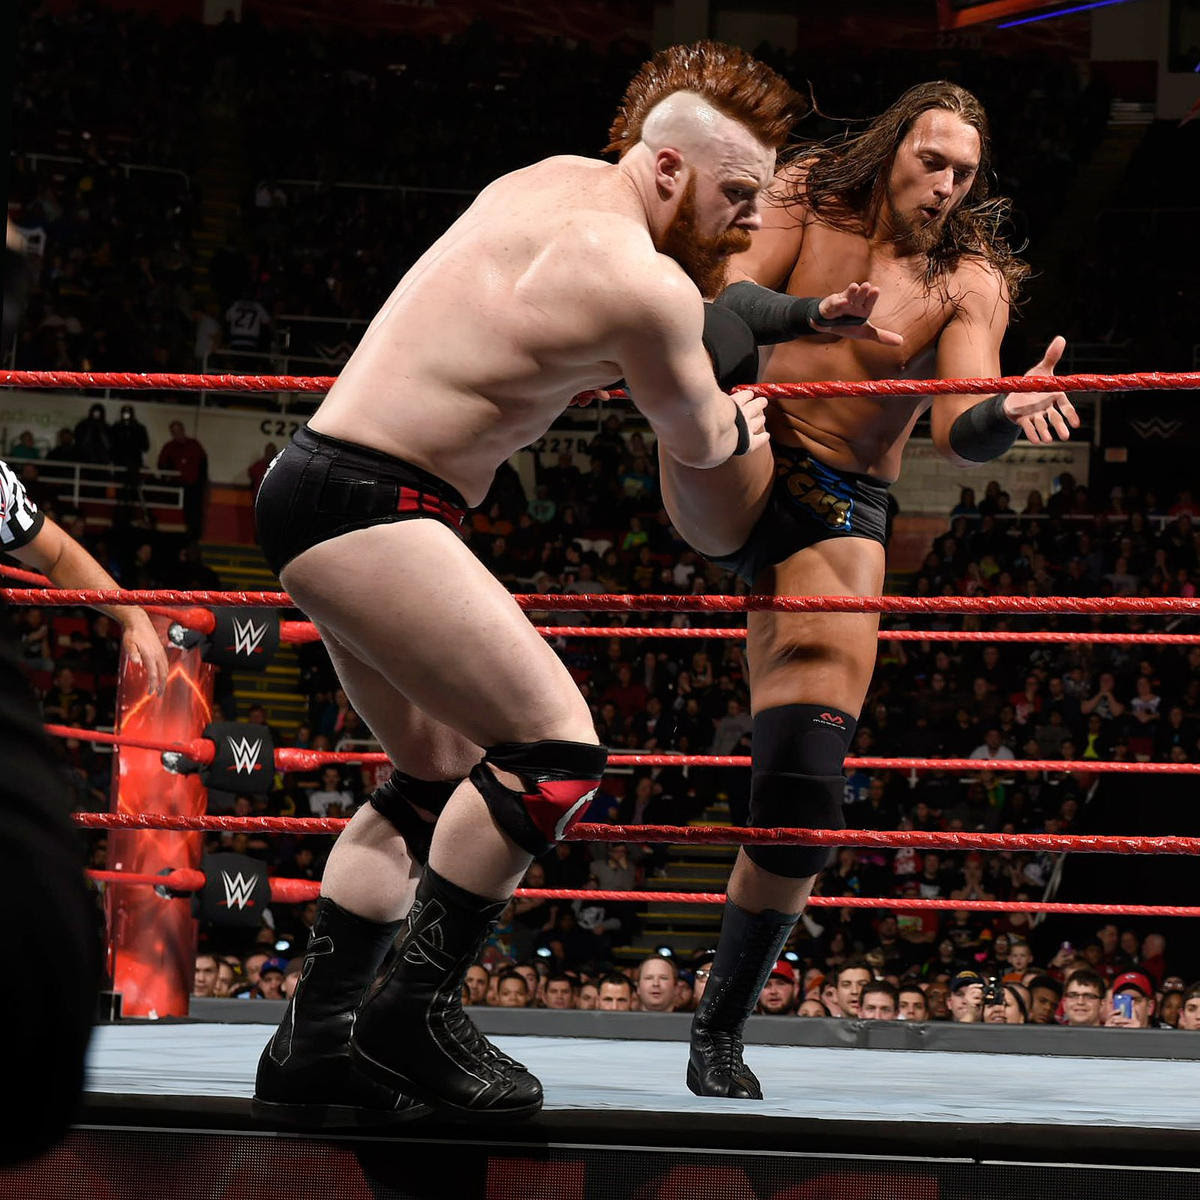 Big Cass attempts to kick Sheamus off the ring apron.